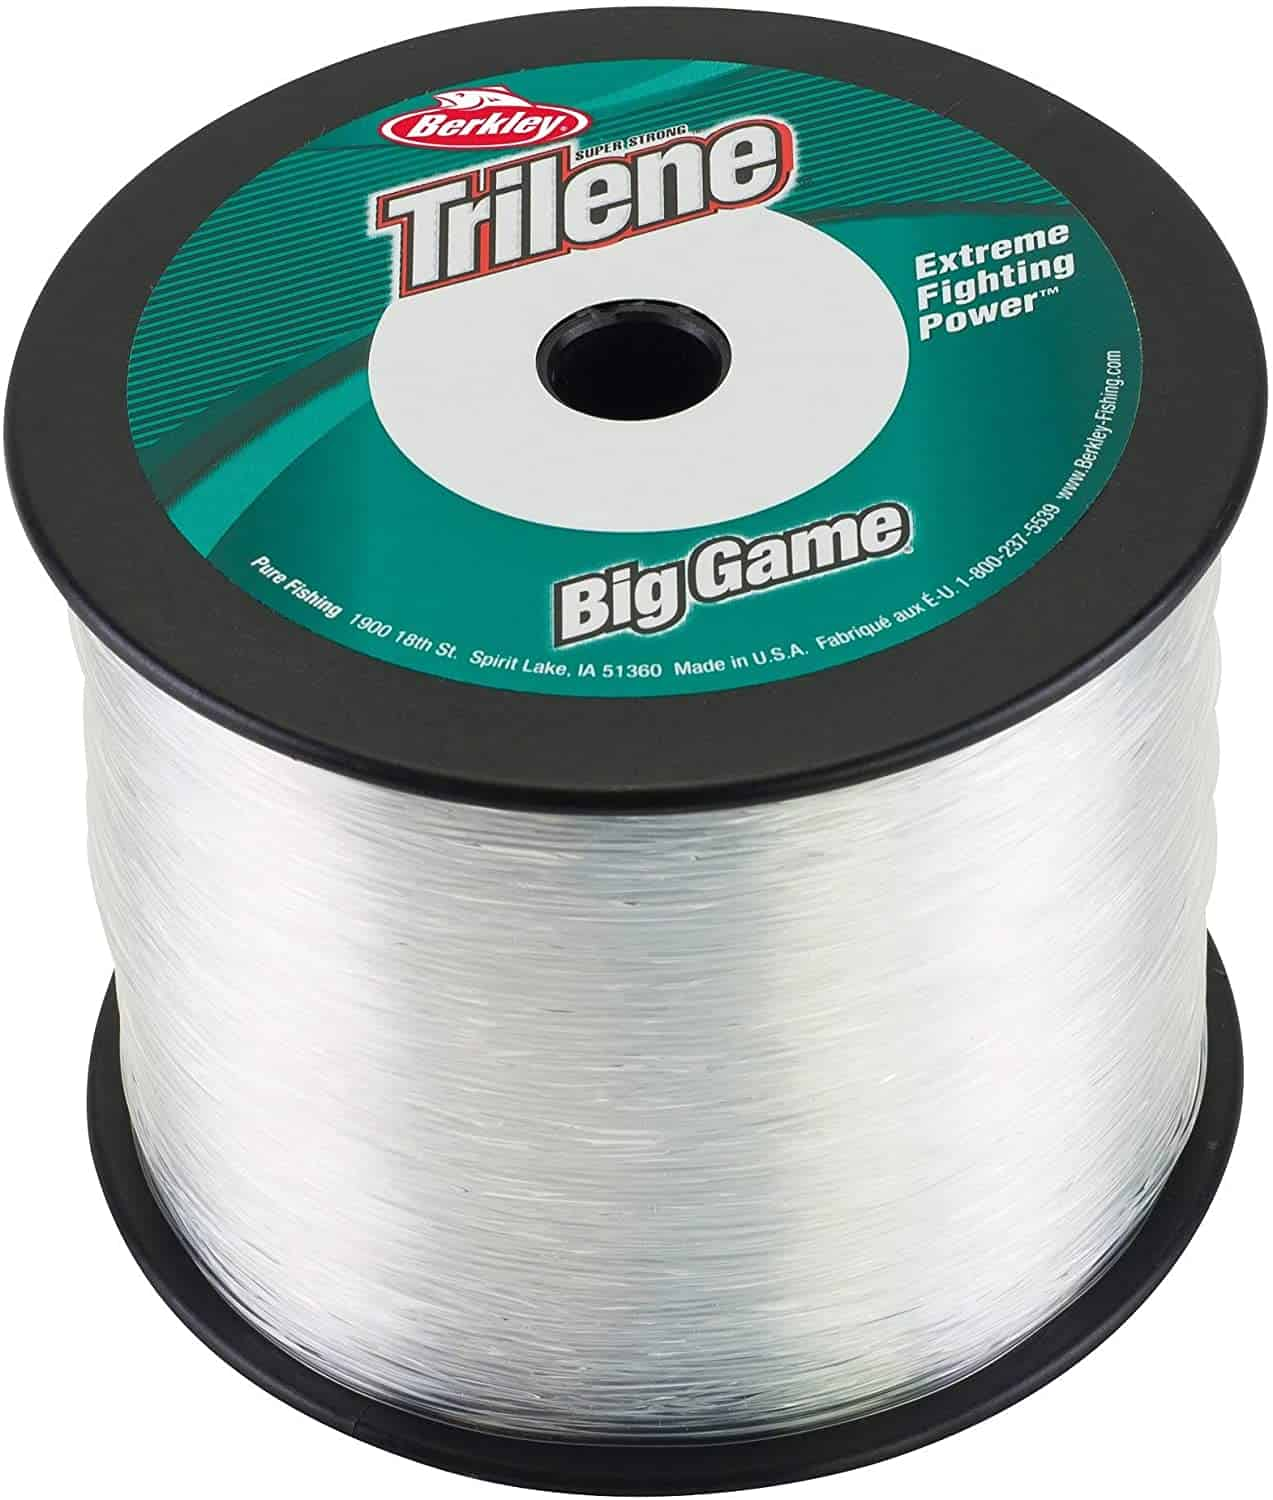 Big Game Mono Fishing Line by Berkley